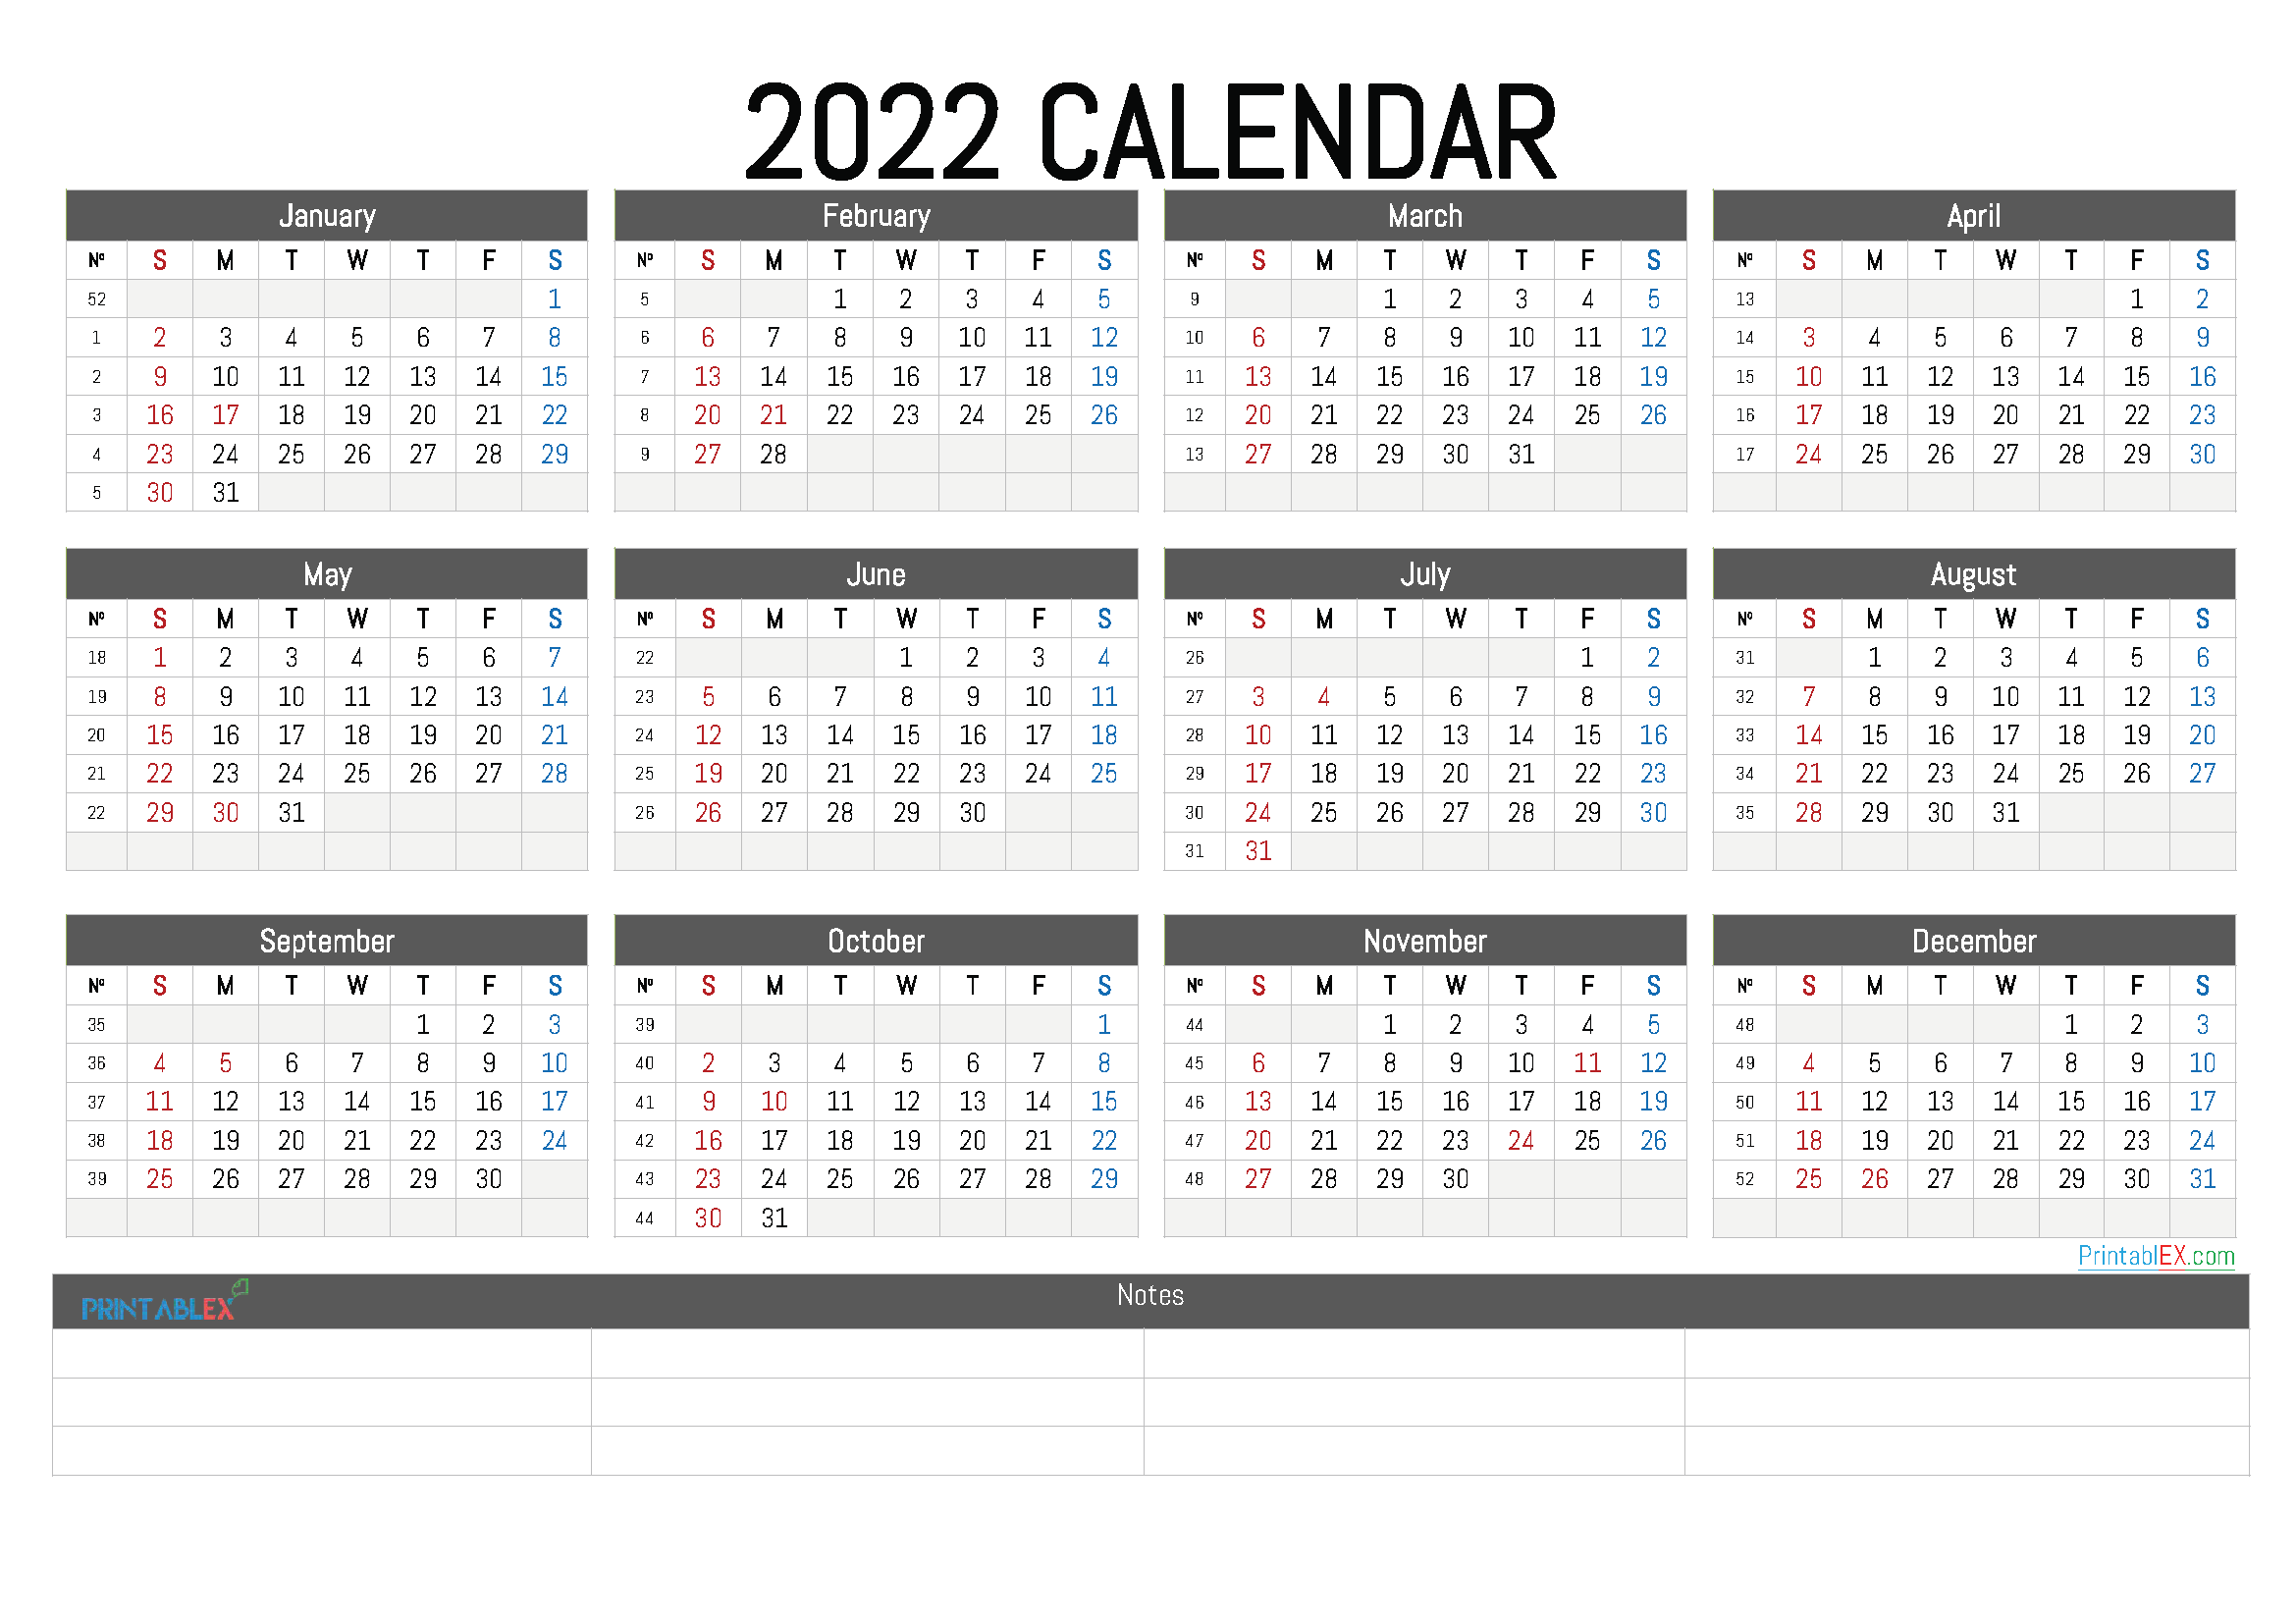 Free Printable 2022 Calendar by Year (Font: adven)